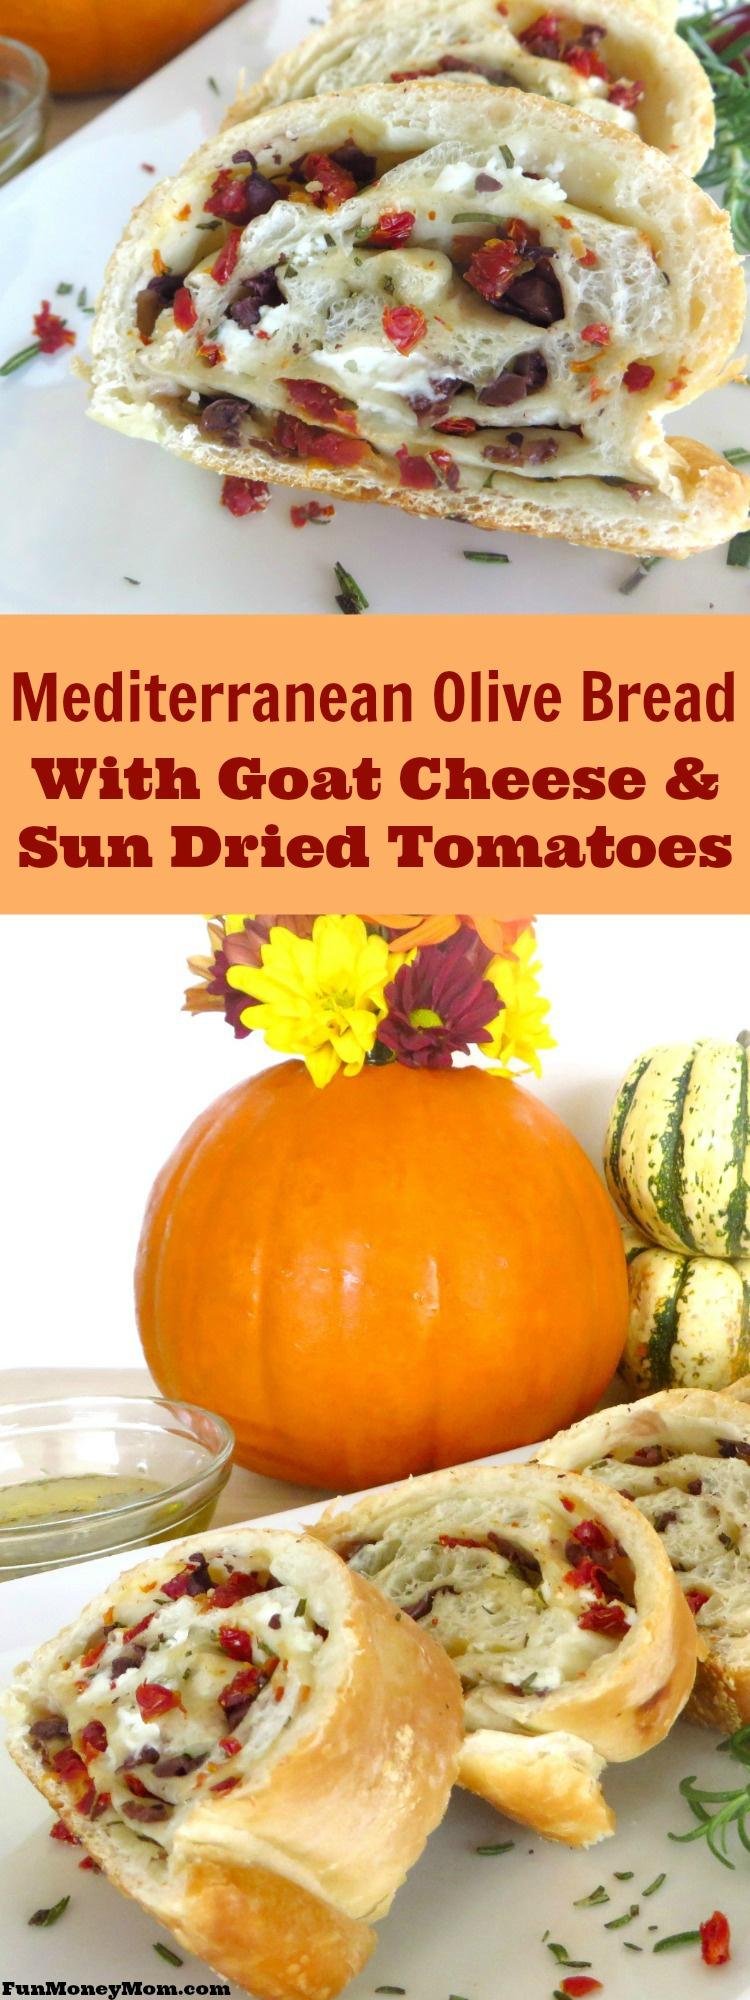 Mediterranean Olive Bread With Goat Cheese & Sun-dried ...